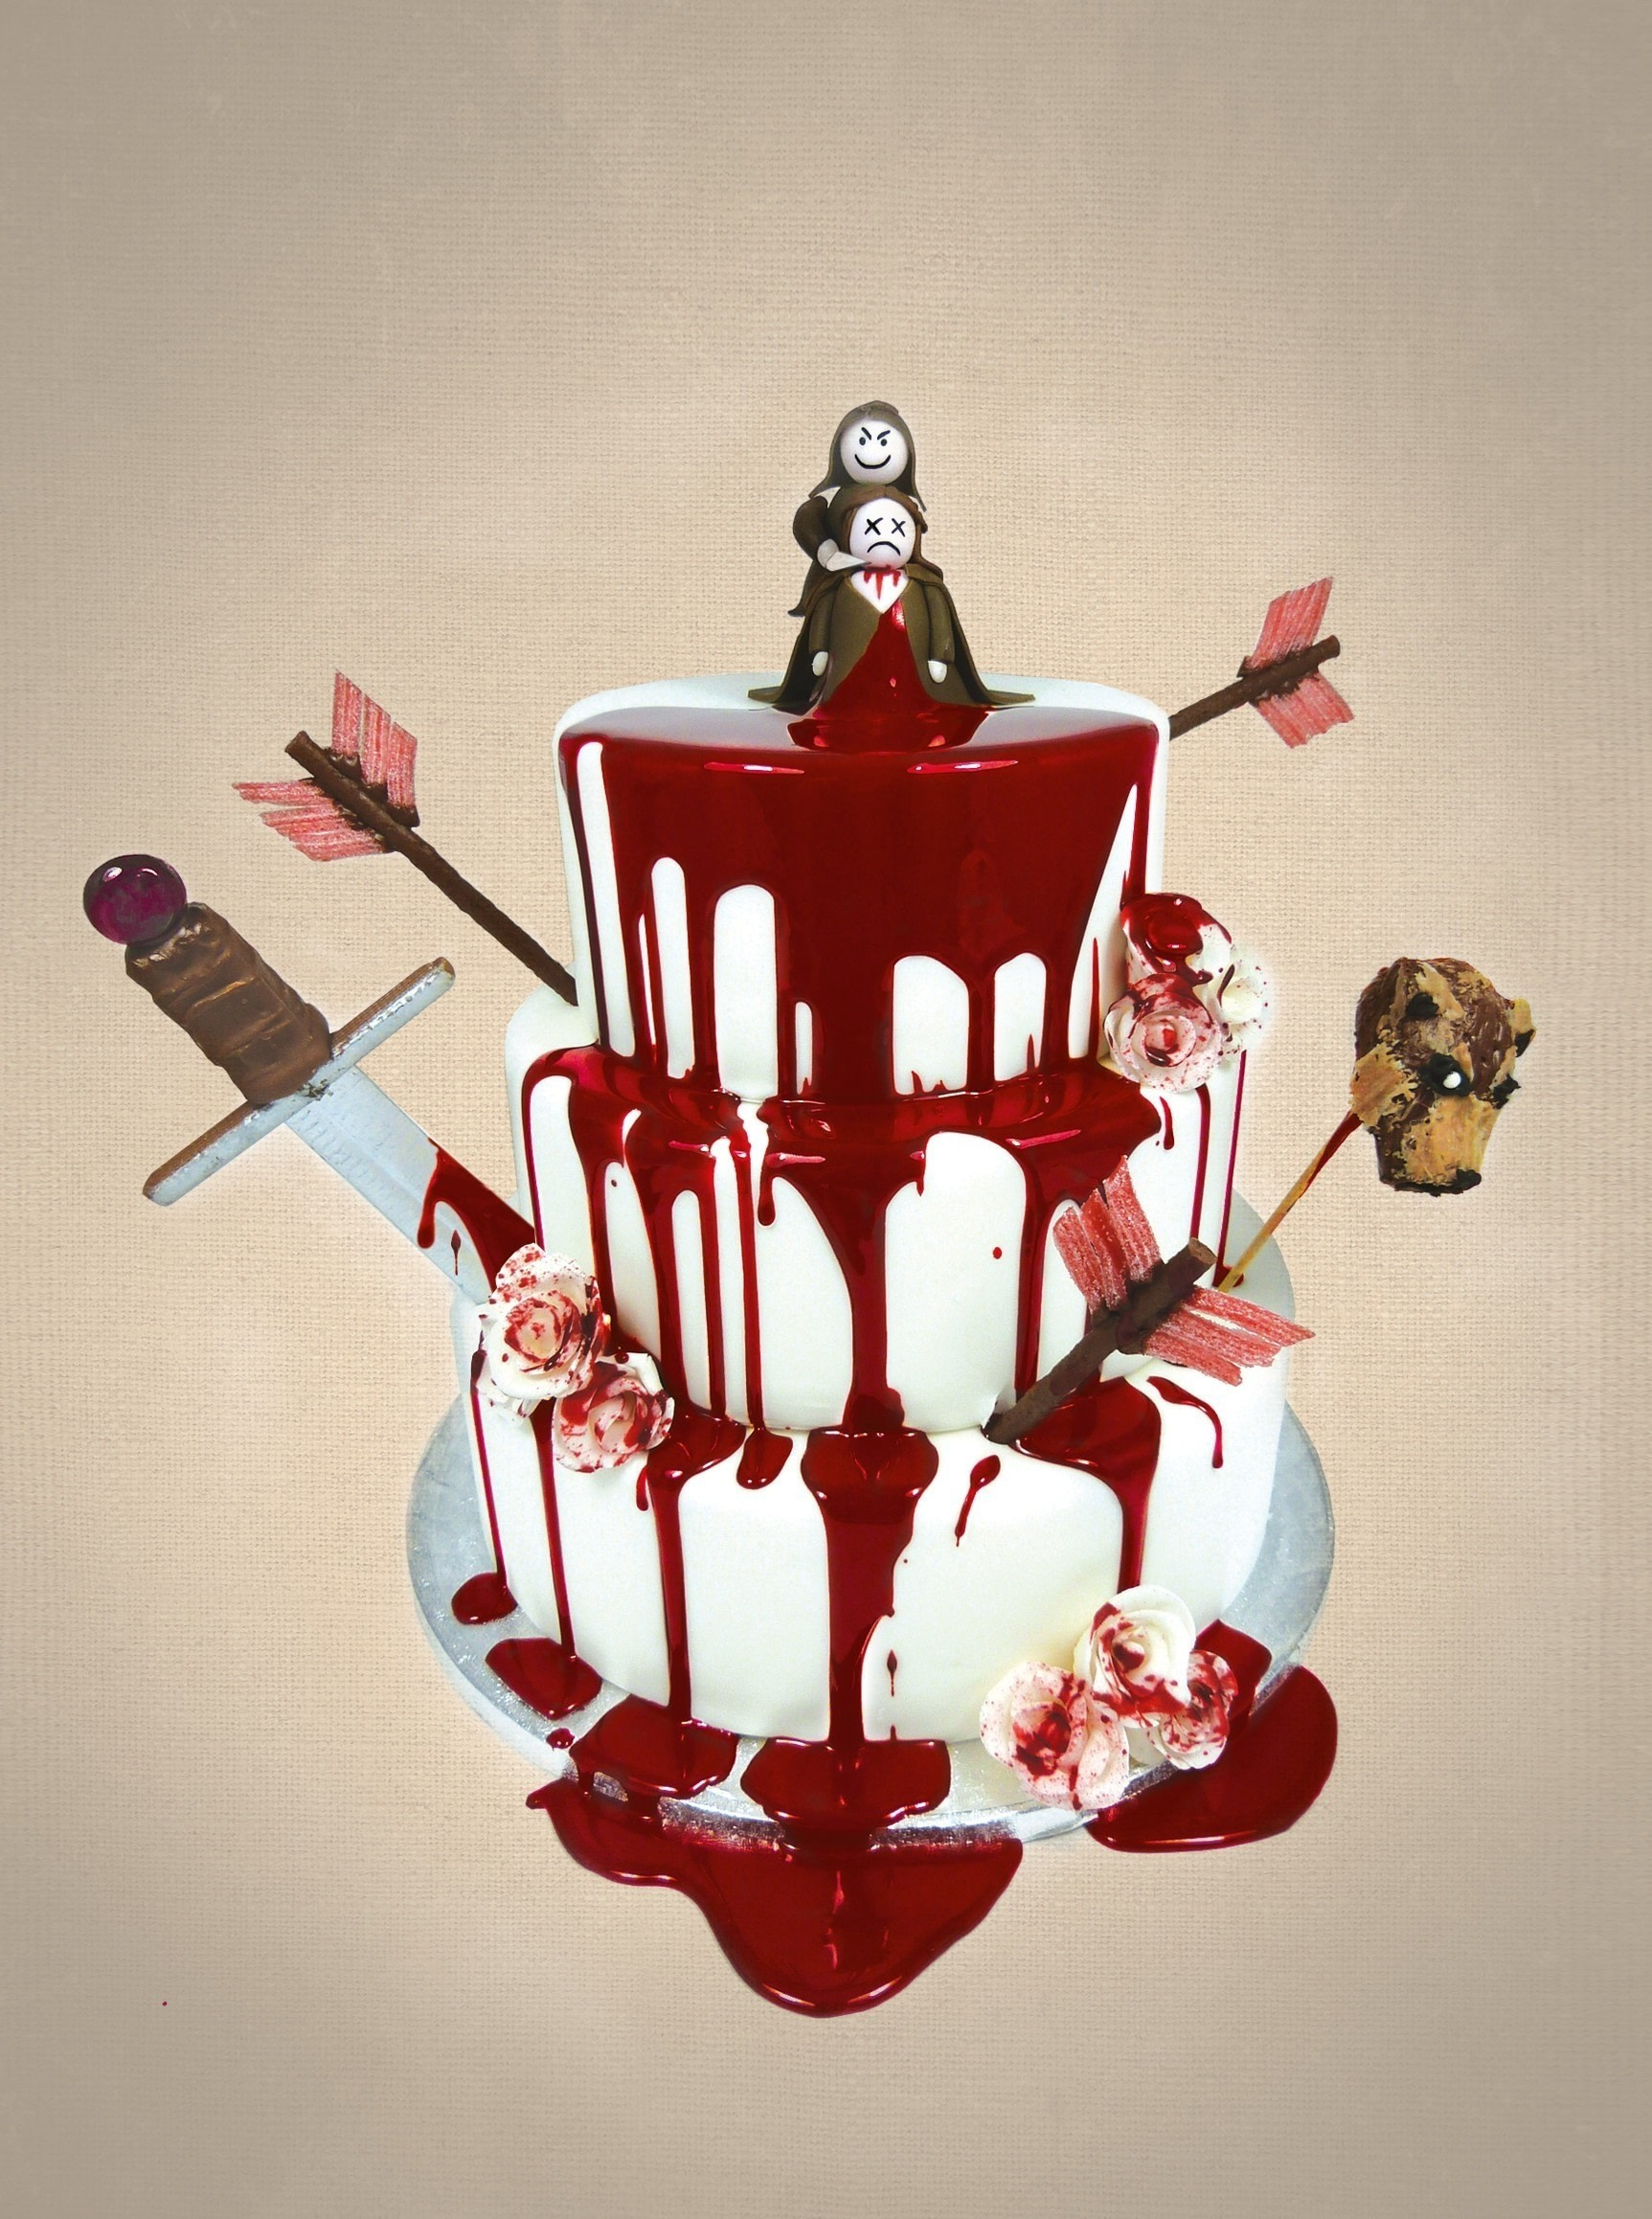 Red Velvet Wedding Cake Extract From Game Of Scones By Jammy